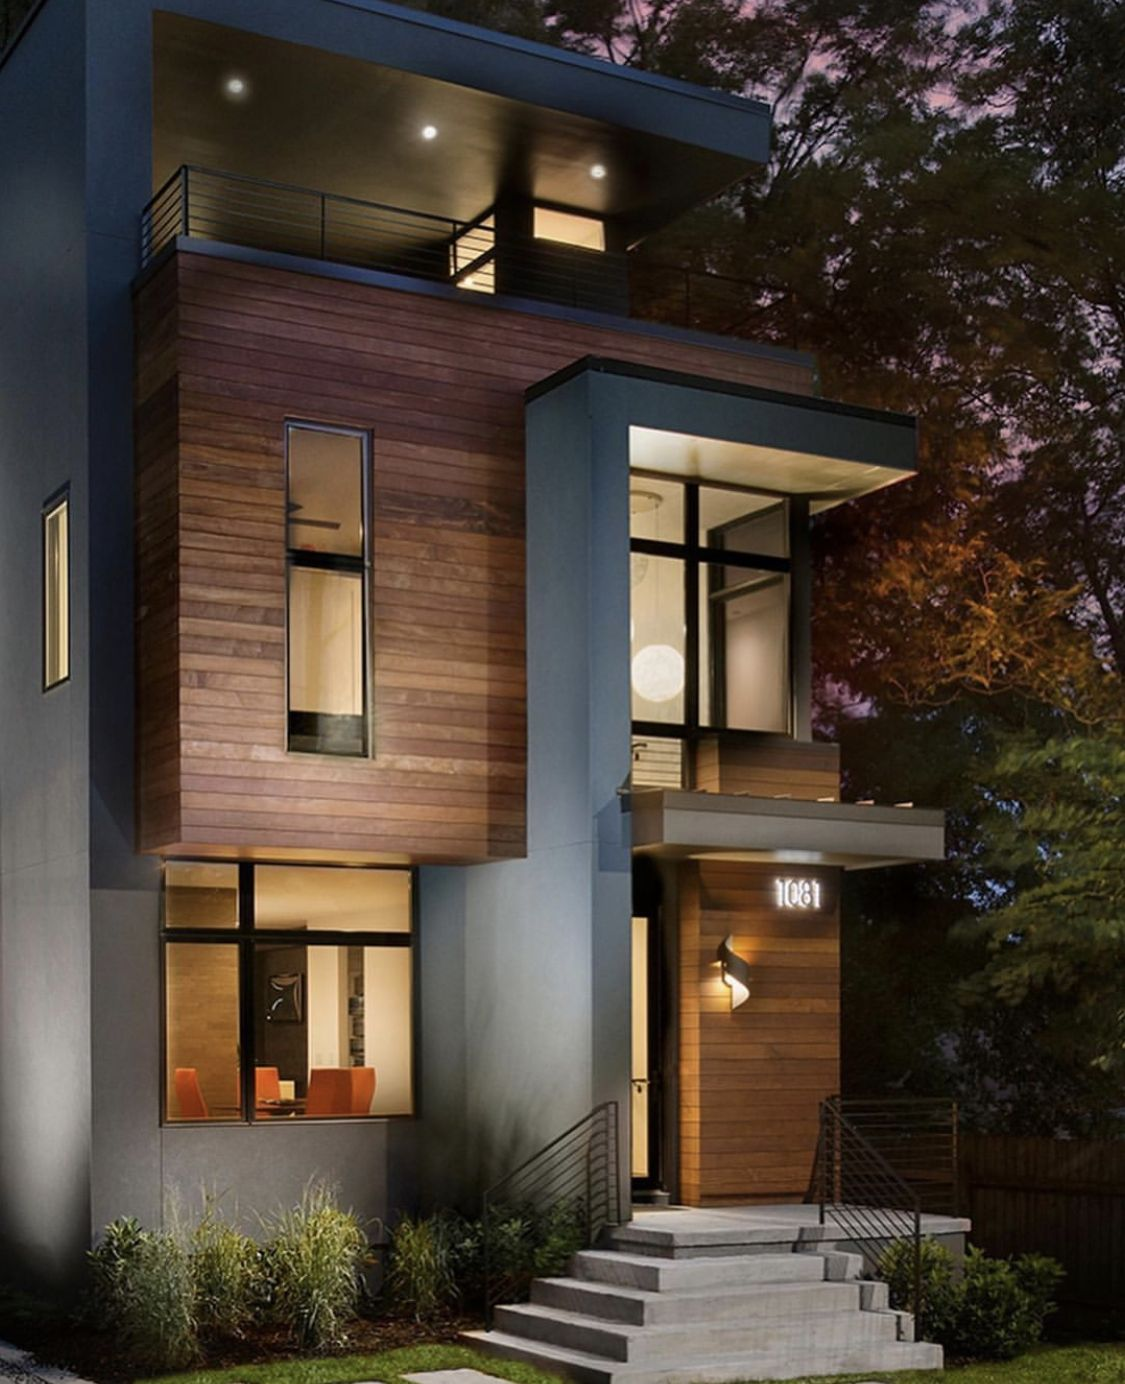 Pin By Hadnah Neira On Merida Small House Elevation Design Modern Small House Design Small House Design Plans